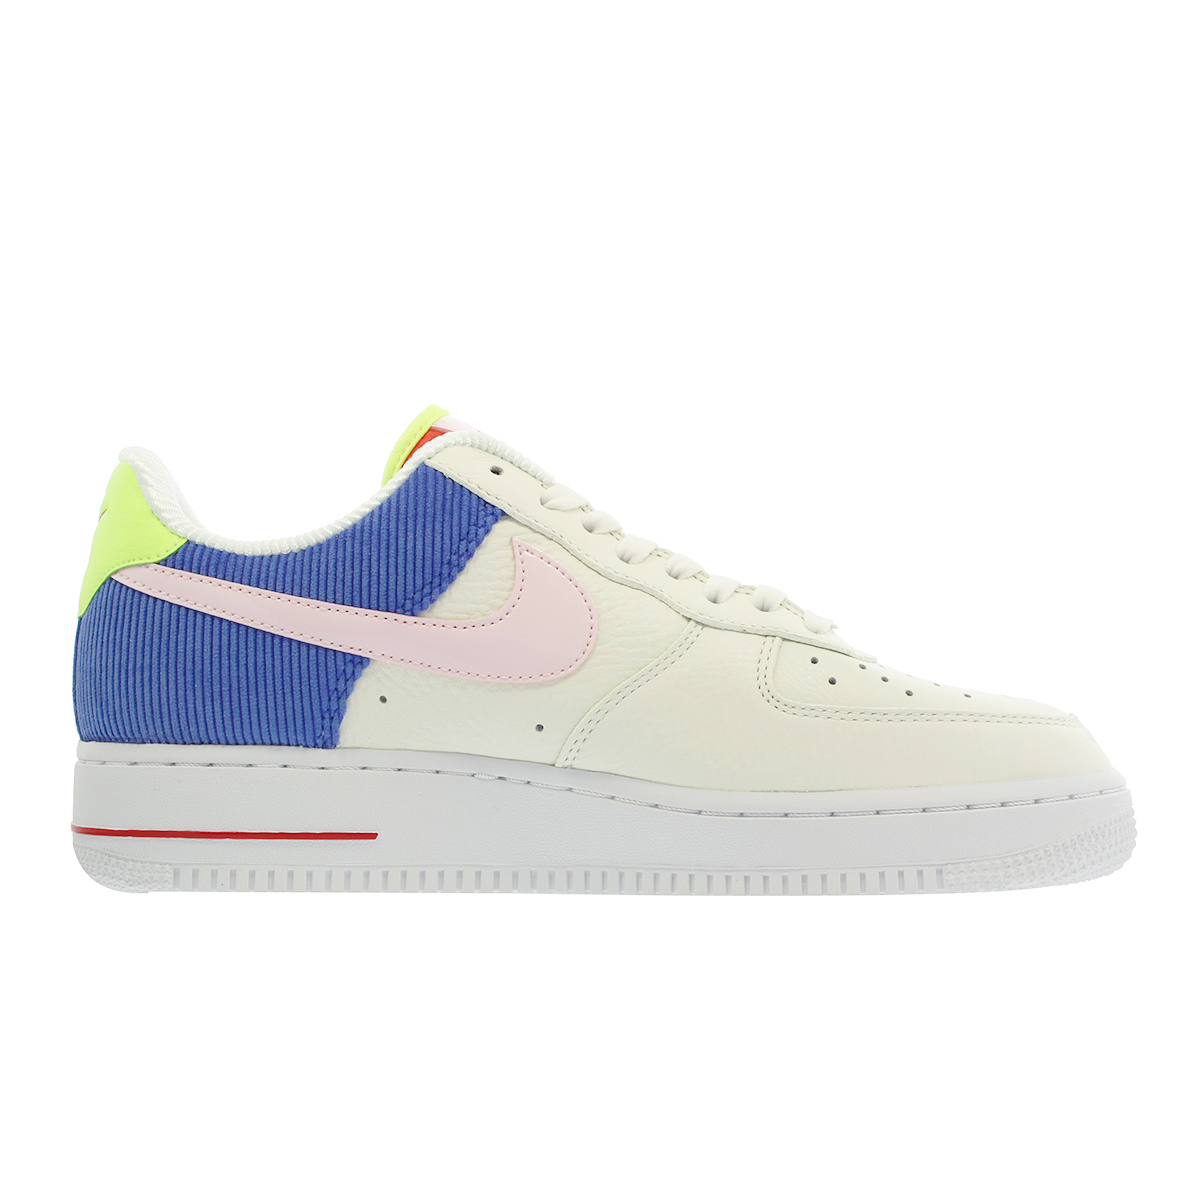 reputable site 7076f 01ec1 NIKE WMNS AIR FORCE 1 LOW Nike women air force 1 low SAIL ARCTIC PINK RACER  BLUE aq4139-101